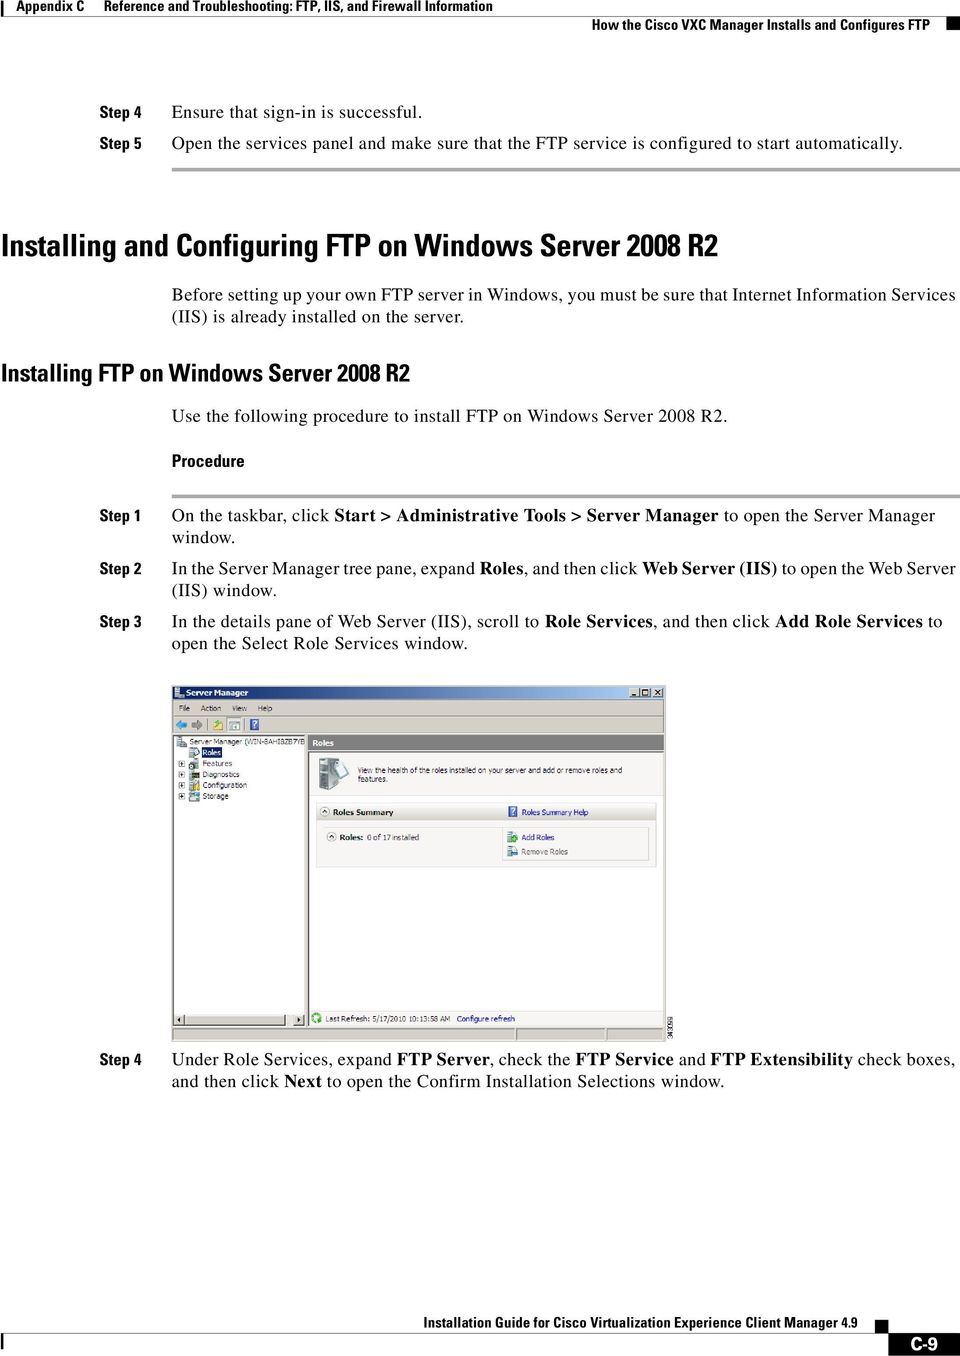 Installing and Configuring FTP on Windows Server 2008 R2 Before setting up your own FTP server in Windows, you must be sure that Internet Information Services (IIS) is already installed on the server.